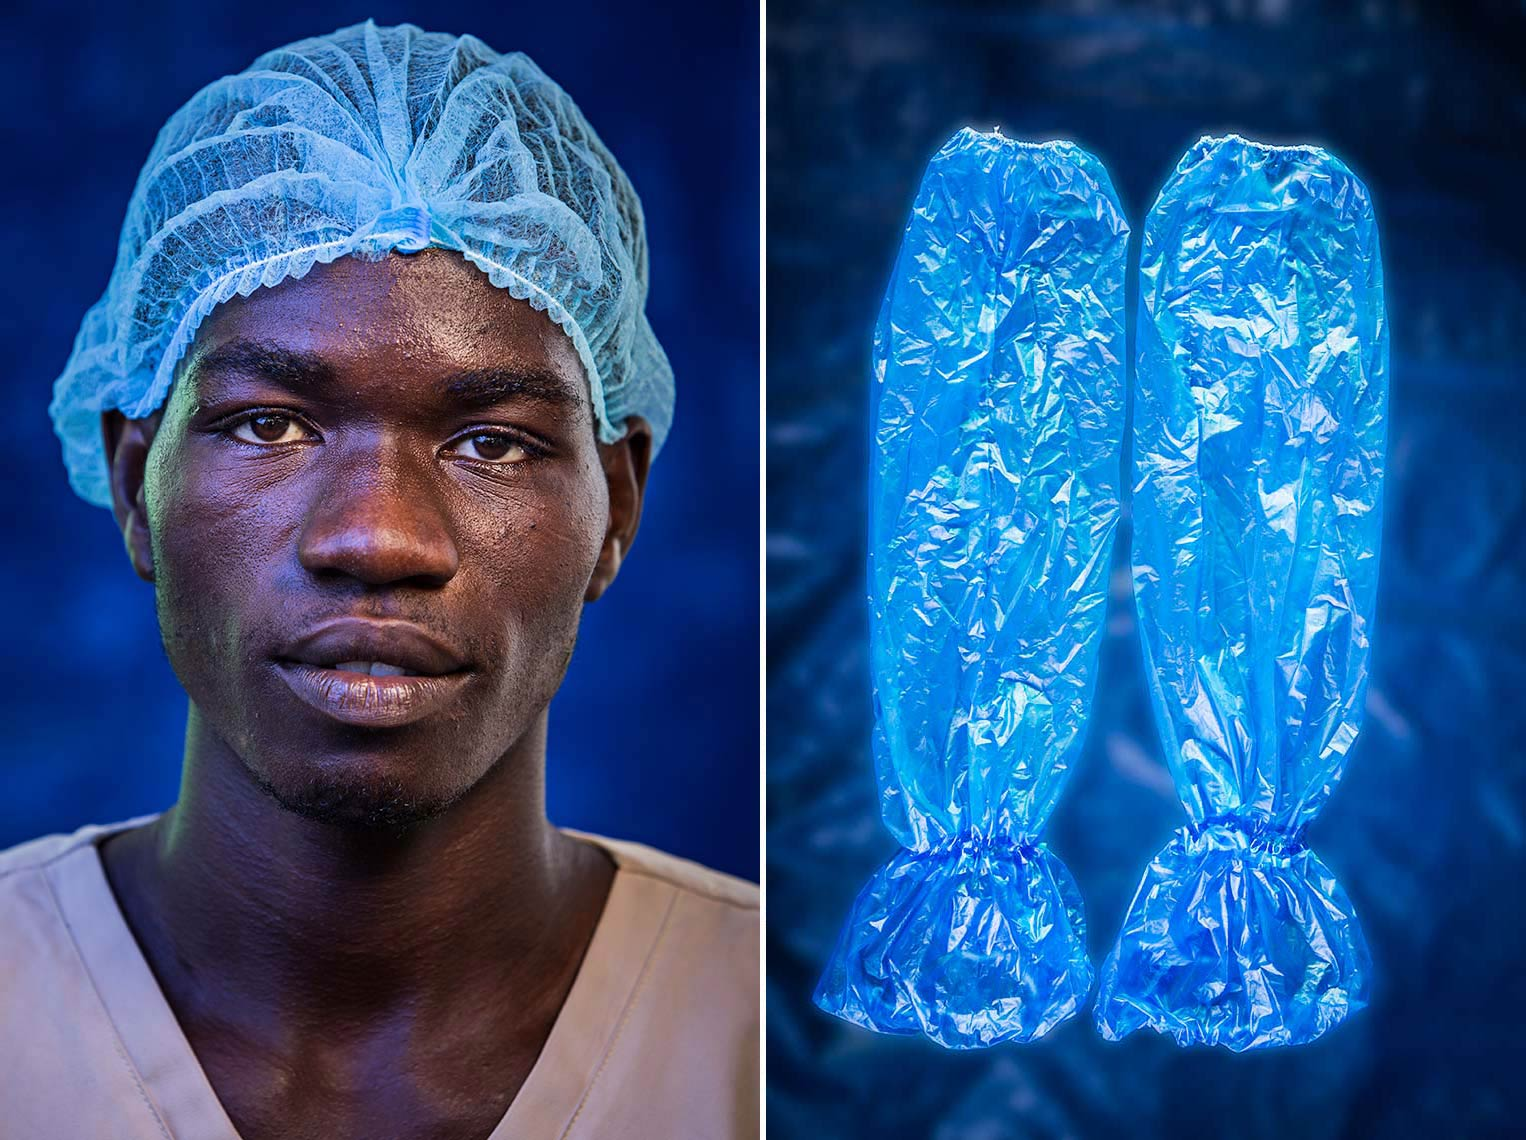 Faces of the people of the Ebola crisis created in a makeshift location studio